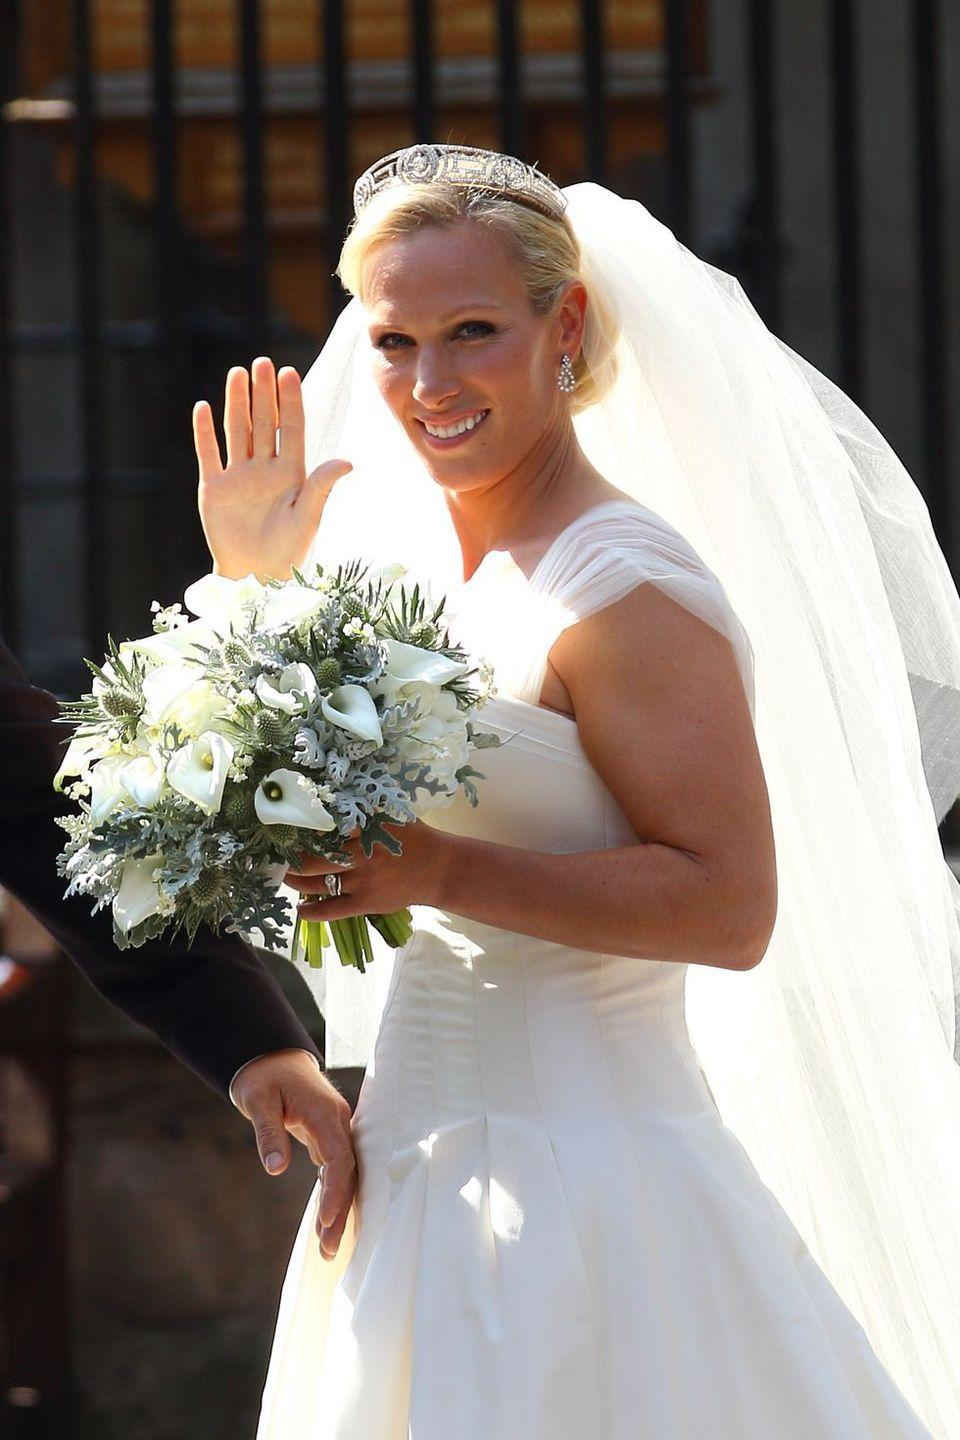 "<p><strong>Wedding date: </strong>July 30, 2011</p><p><strong>Wedding tiara: </strong><a href=""https://www.townandcountrymag.com/society/tradition/g19460546/zara-tindall-best-style-moments/"" rel=""nofollow noopener"" target=""_blank"" data-ylk=""slk:Zara wore a Greek key"" class=""link rapid-noclick-resp"">Zara wore a Greek key</a>-patterned tiara. The diadem, which is in Princess Anne's collection and is one of her favorites, once belonged to Prince Philip's mother, Princess Andrew of Greece. It's often called <a href=""http://orderofsplendor.blogspot.com/2011/07/tiara-thursday-meander-tiara.html"" rel=""nofollow noopener"" target=""_blank"" data-ylk=""slk:Princess Andrew's Meander Tiara."" class=""link rapid-noclick-resp"">Princess Andrew's Meander Tiara.</a></p>"